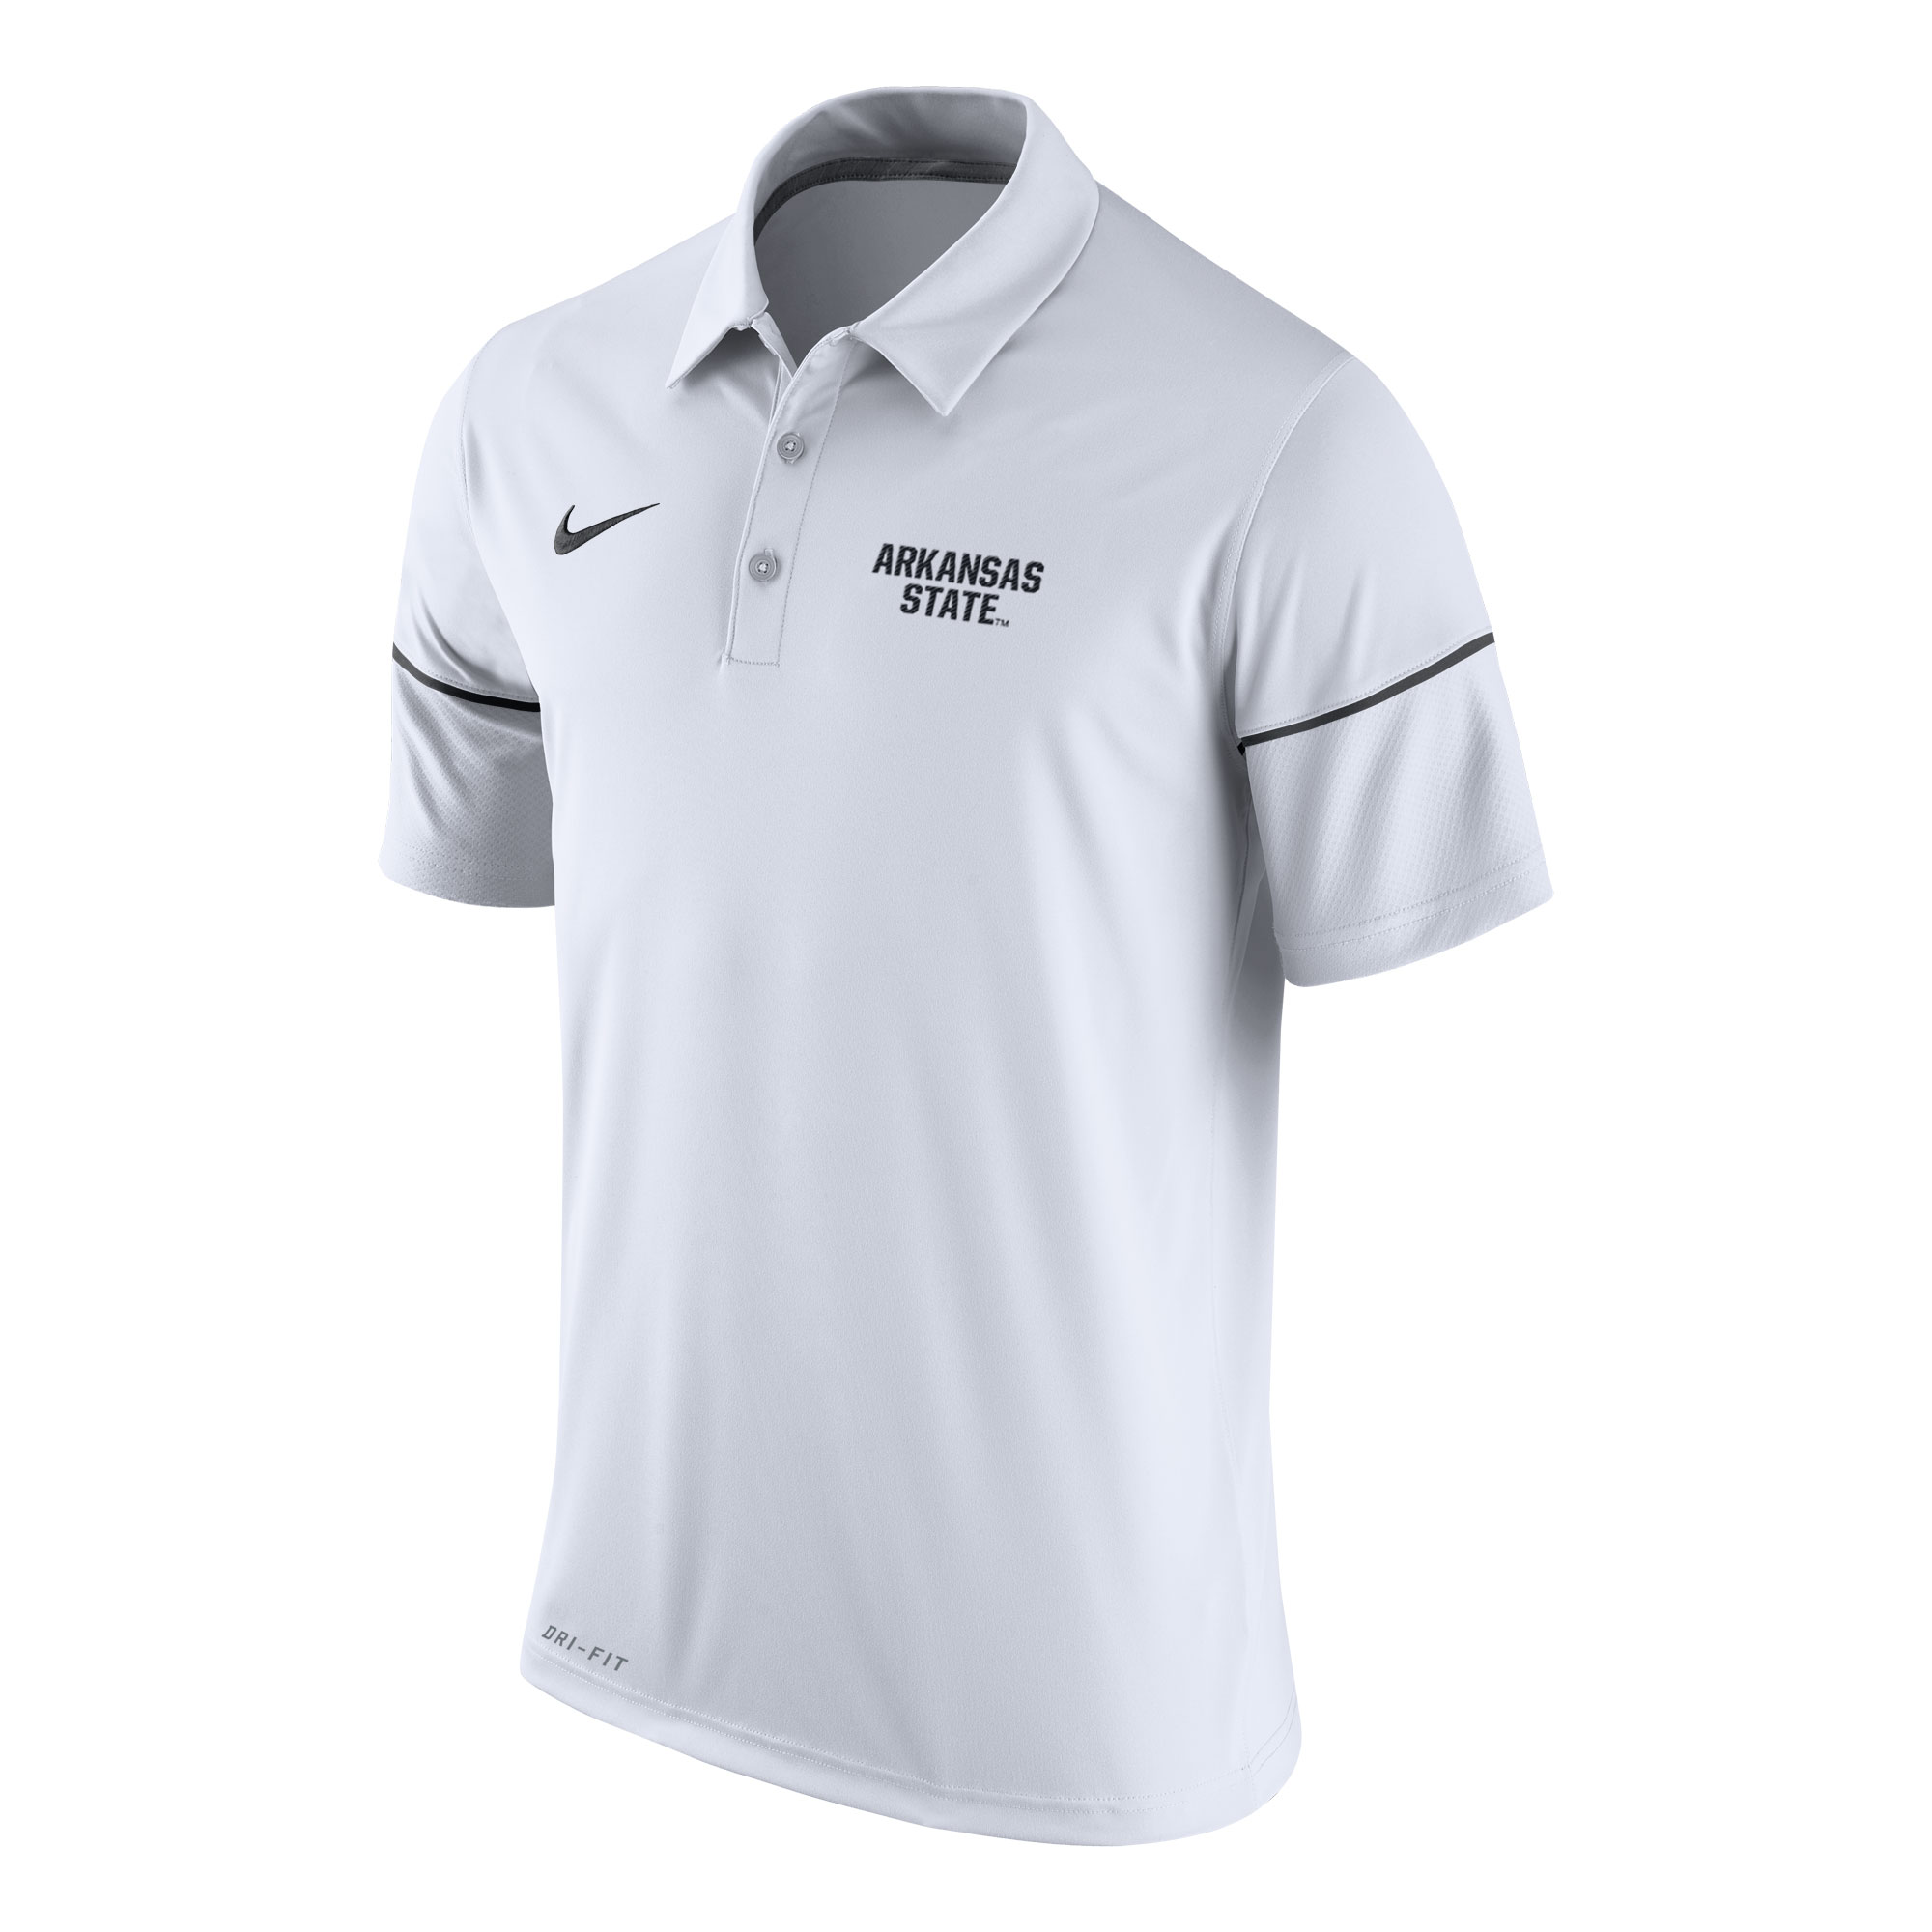 Arkansas State Team Issue Polo